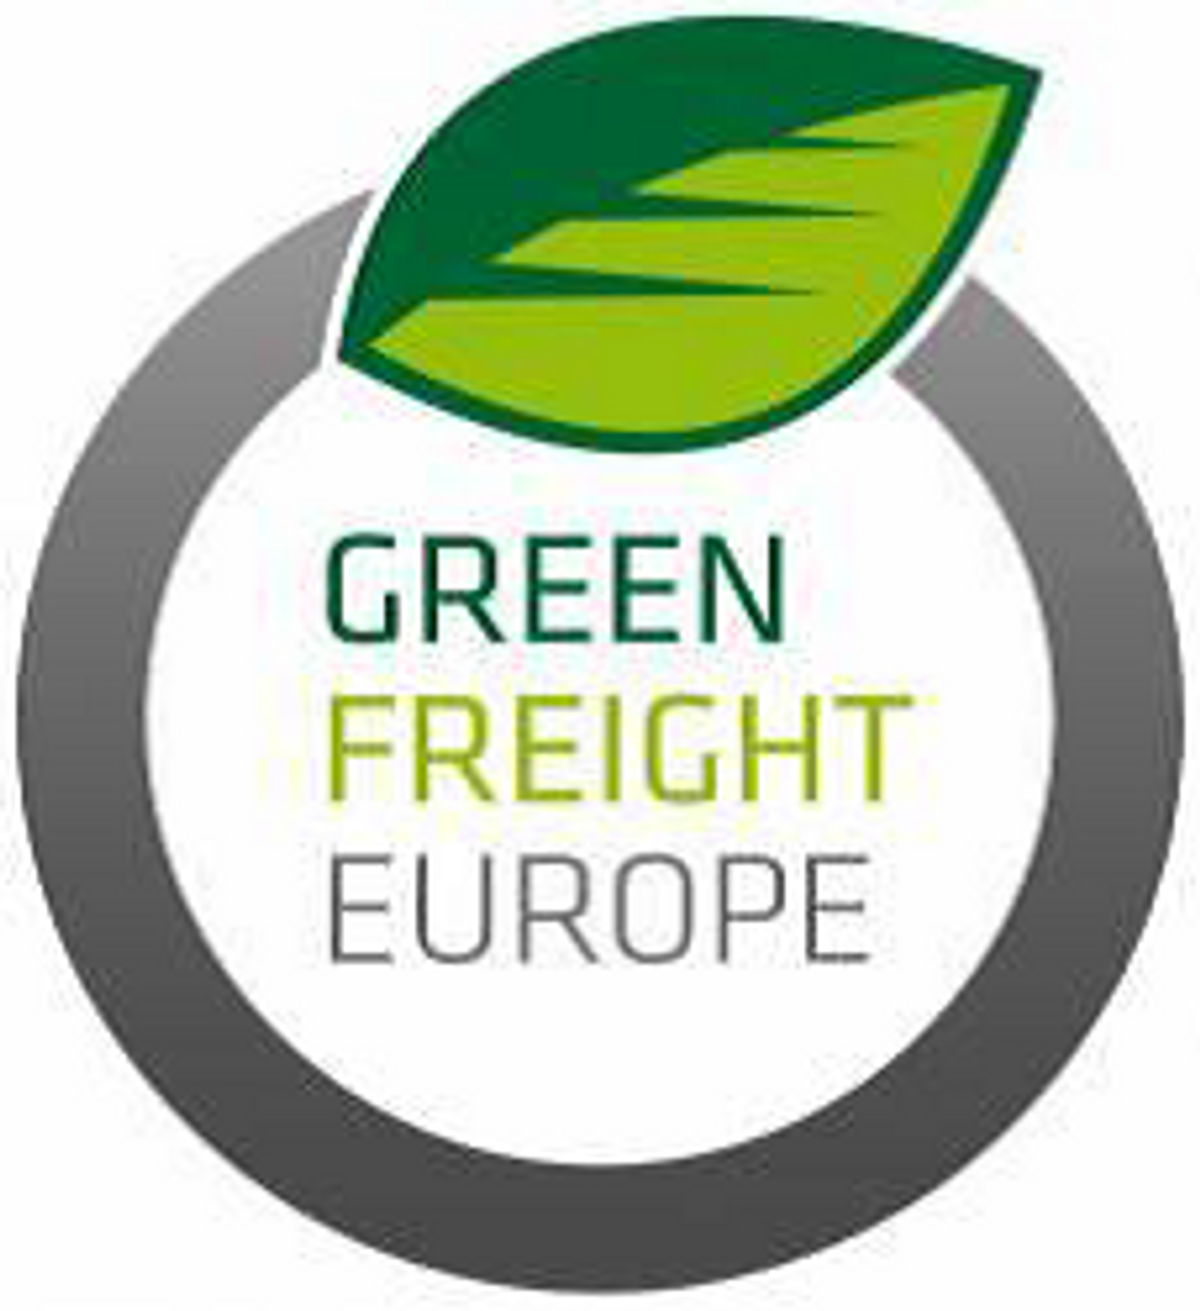 Penske Logistics Joins Green Freight Europe